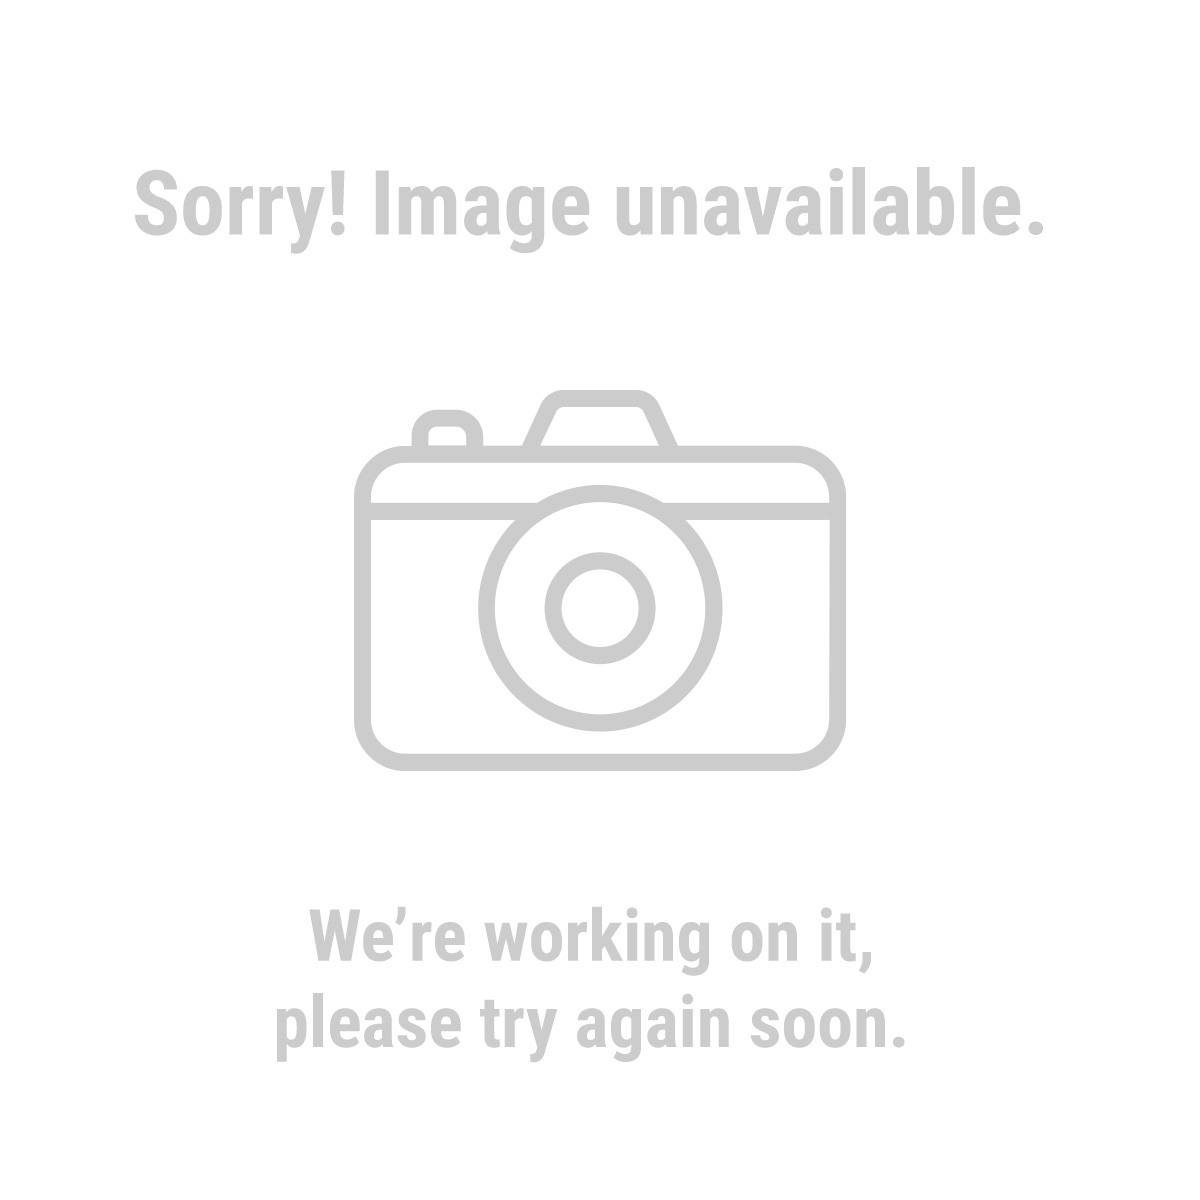 Pittsburgh® Automotive 62160 1.5 Ton Compact Aluminum Racing Floor Jack with Rapid Pump®